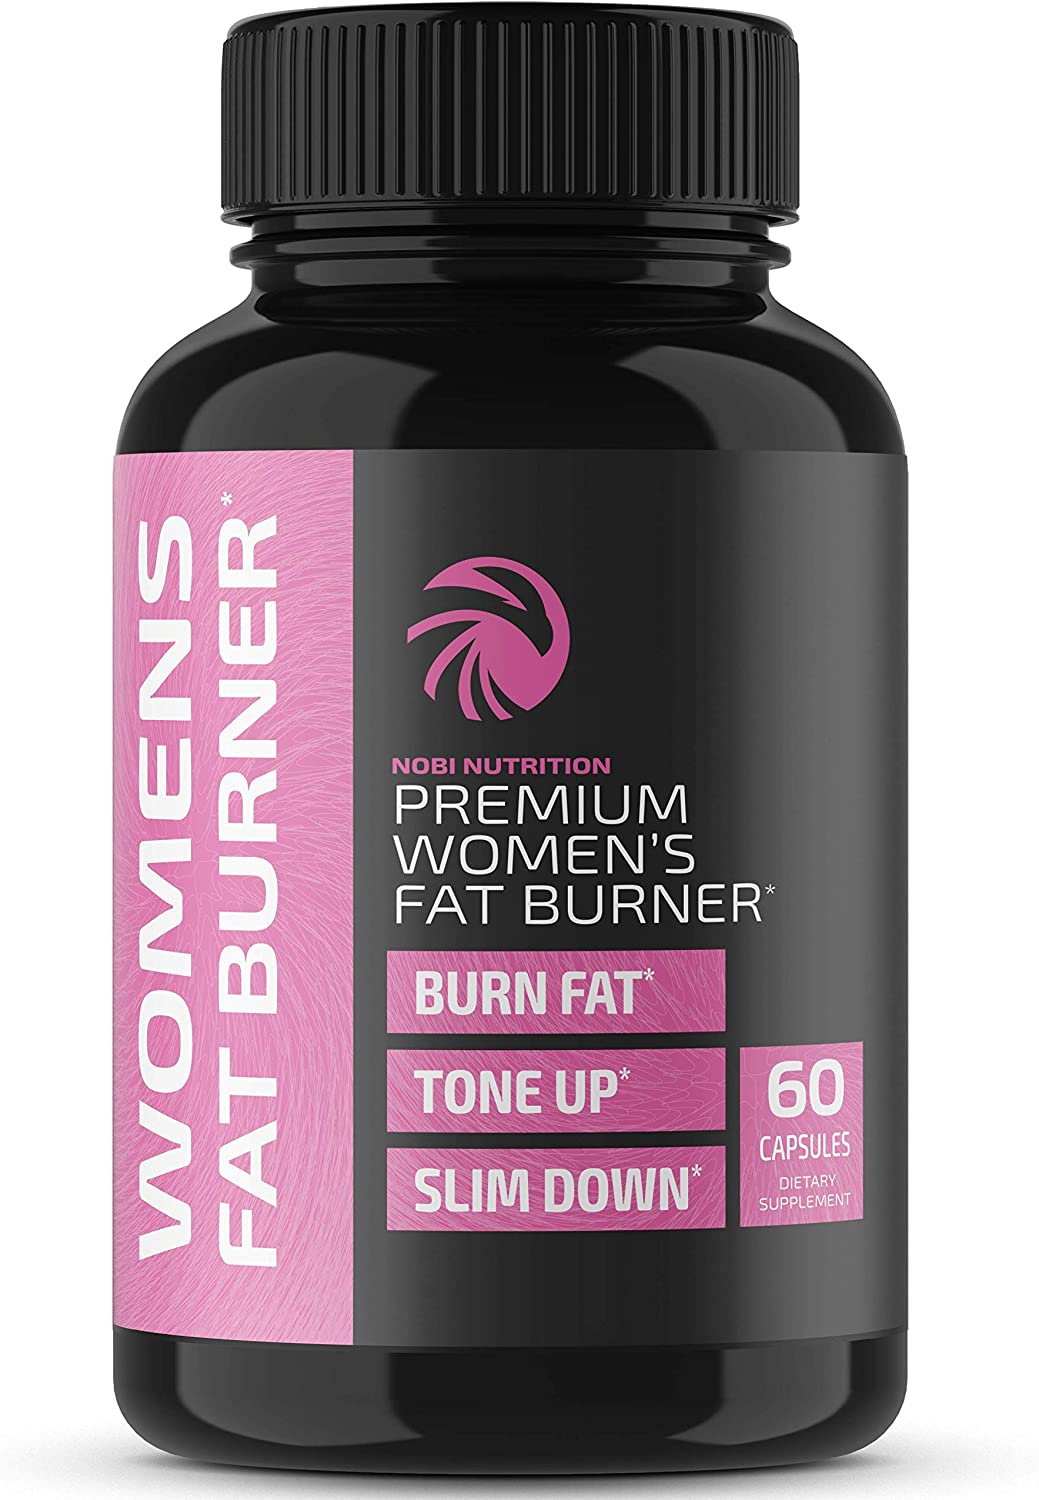 Nobi Nutrition Fat Burner for Women Ca - Diet Challenge the lowest price Deluxe Loss Pills Weight